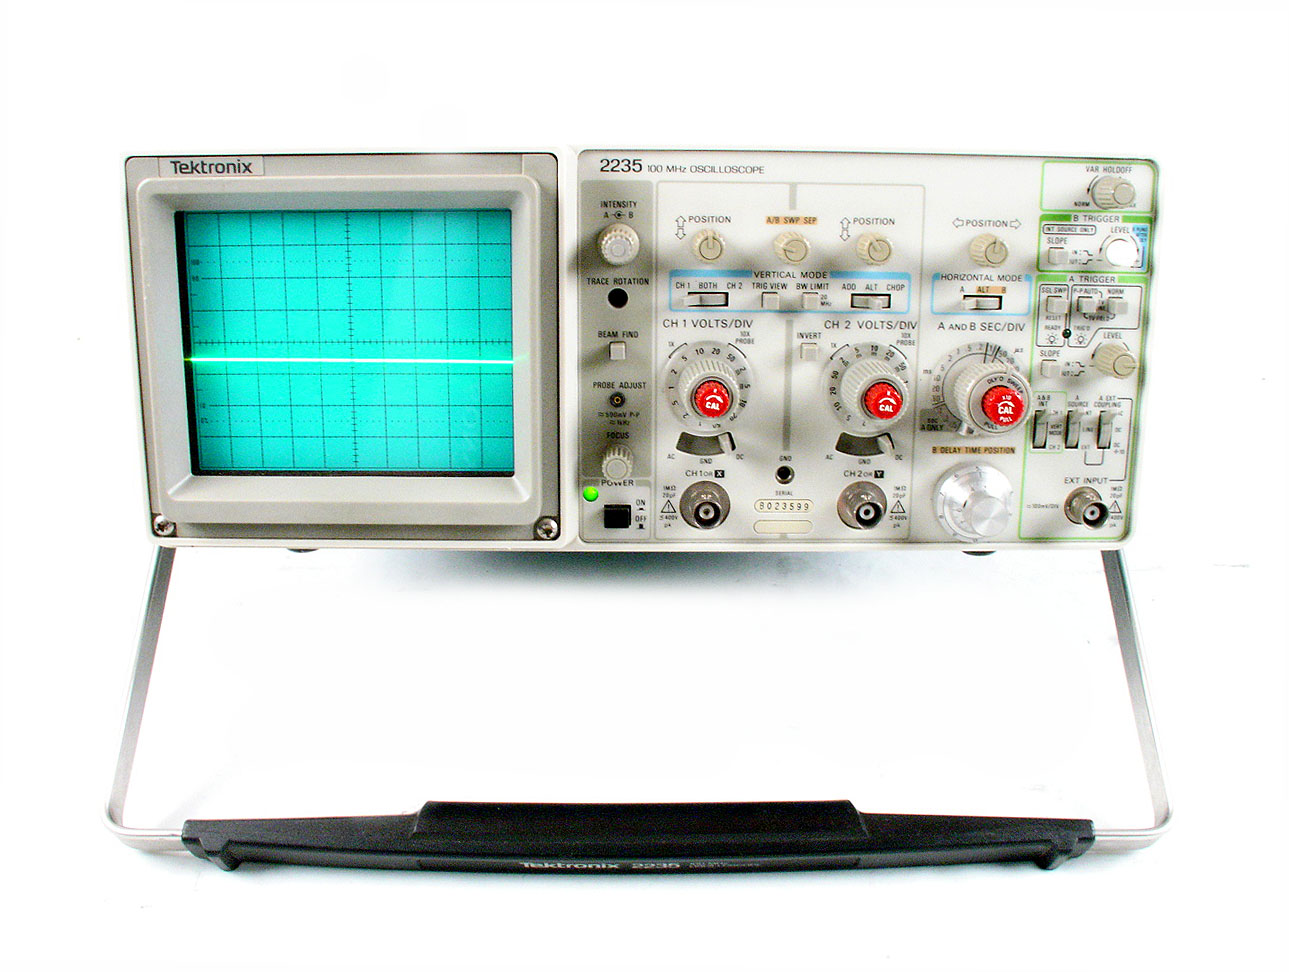 Tektronix 2235 for sale